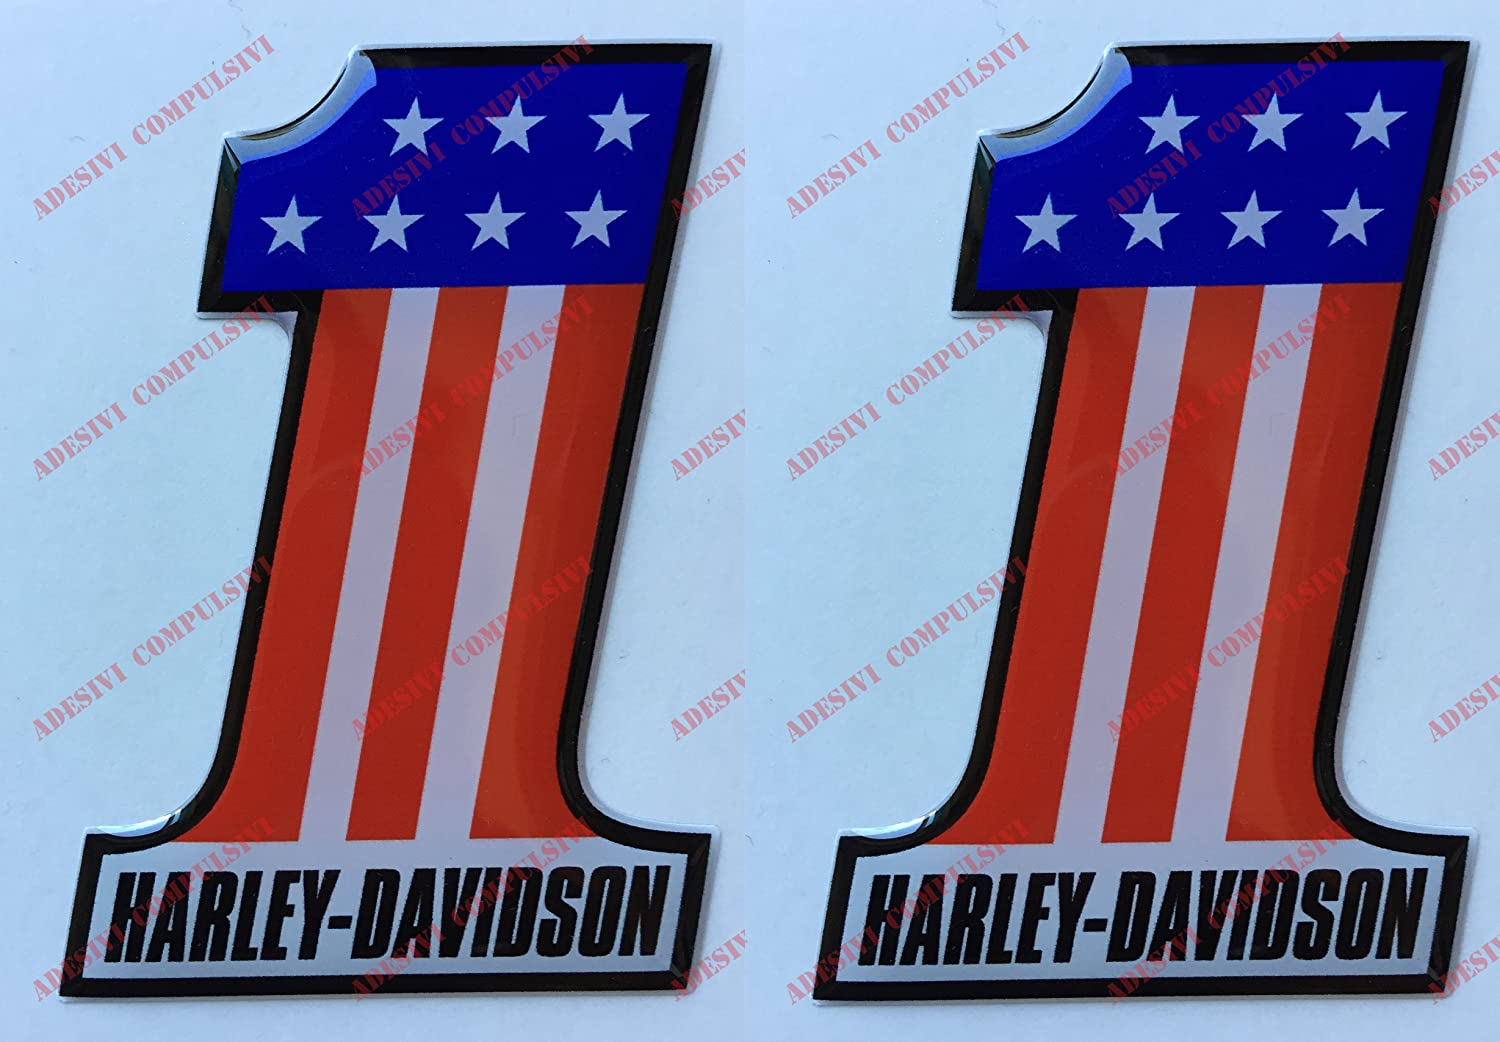 Emblè me Logo Decal Harley Davidson, Number One, U.S.A., couple Stickers, Ré sine Effet 3d. Pour ré servoir ou casque Résine Effet 3d. Pour réservoir ou casque Adesivi Compulsivi